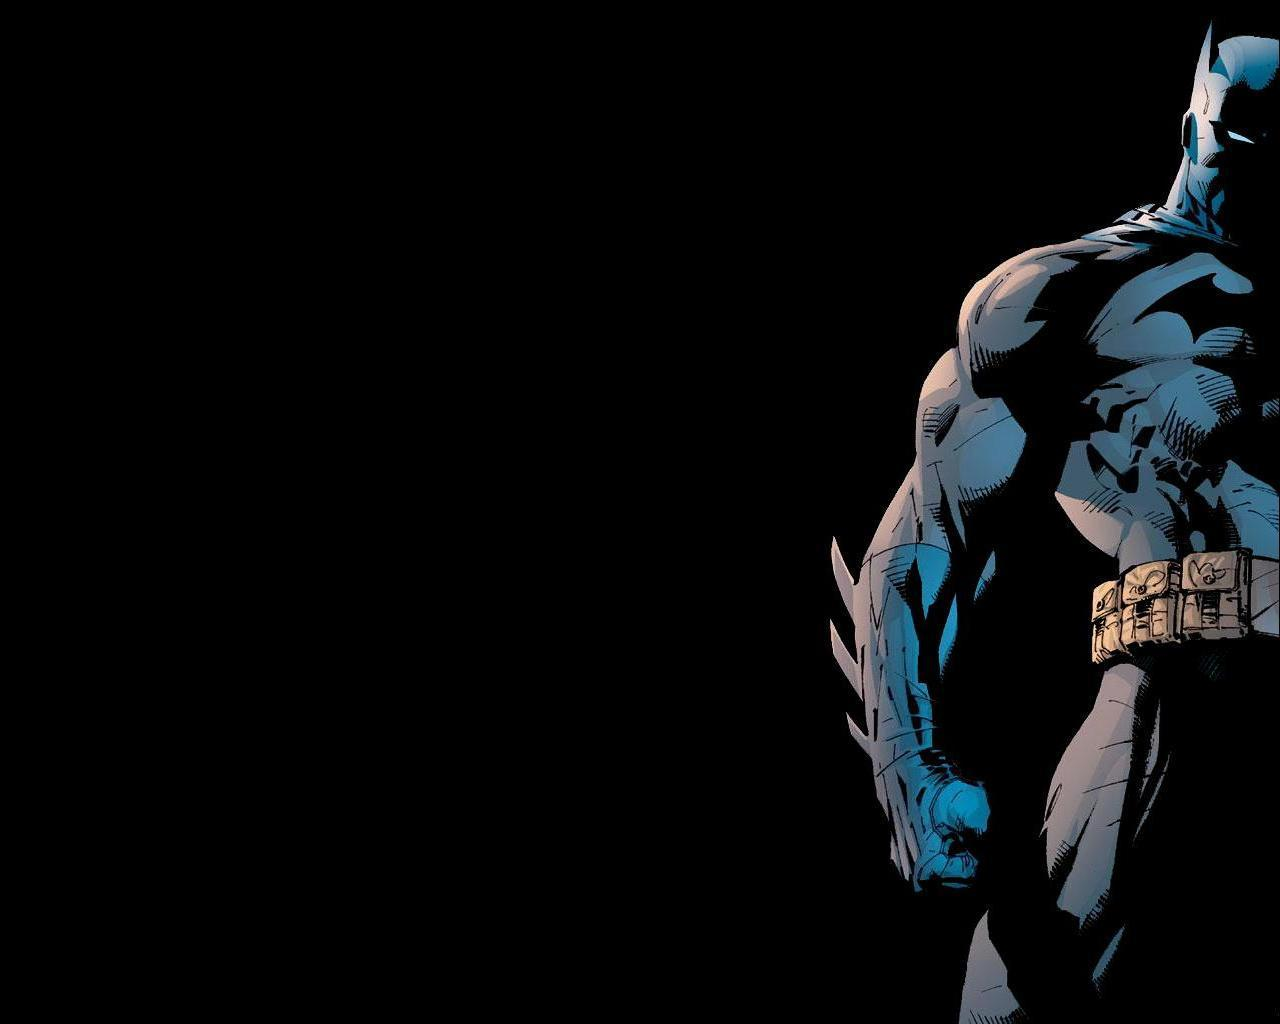 Android For desktop for Iphone 5 For Windows 2013 Batman Hd Wallpaper 1280x1024